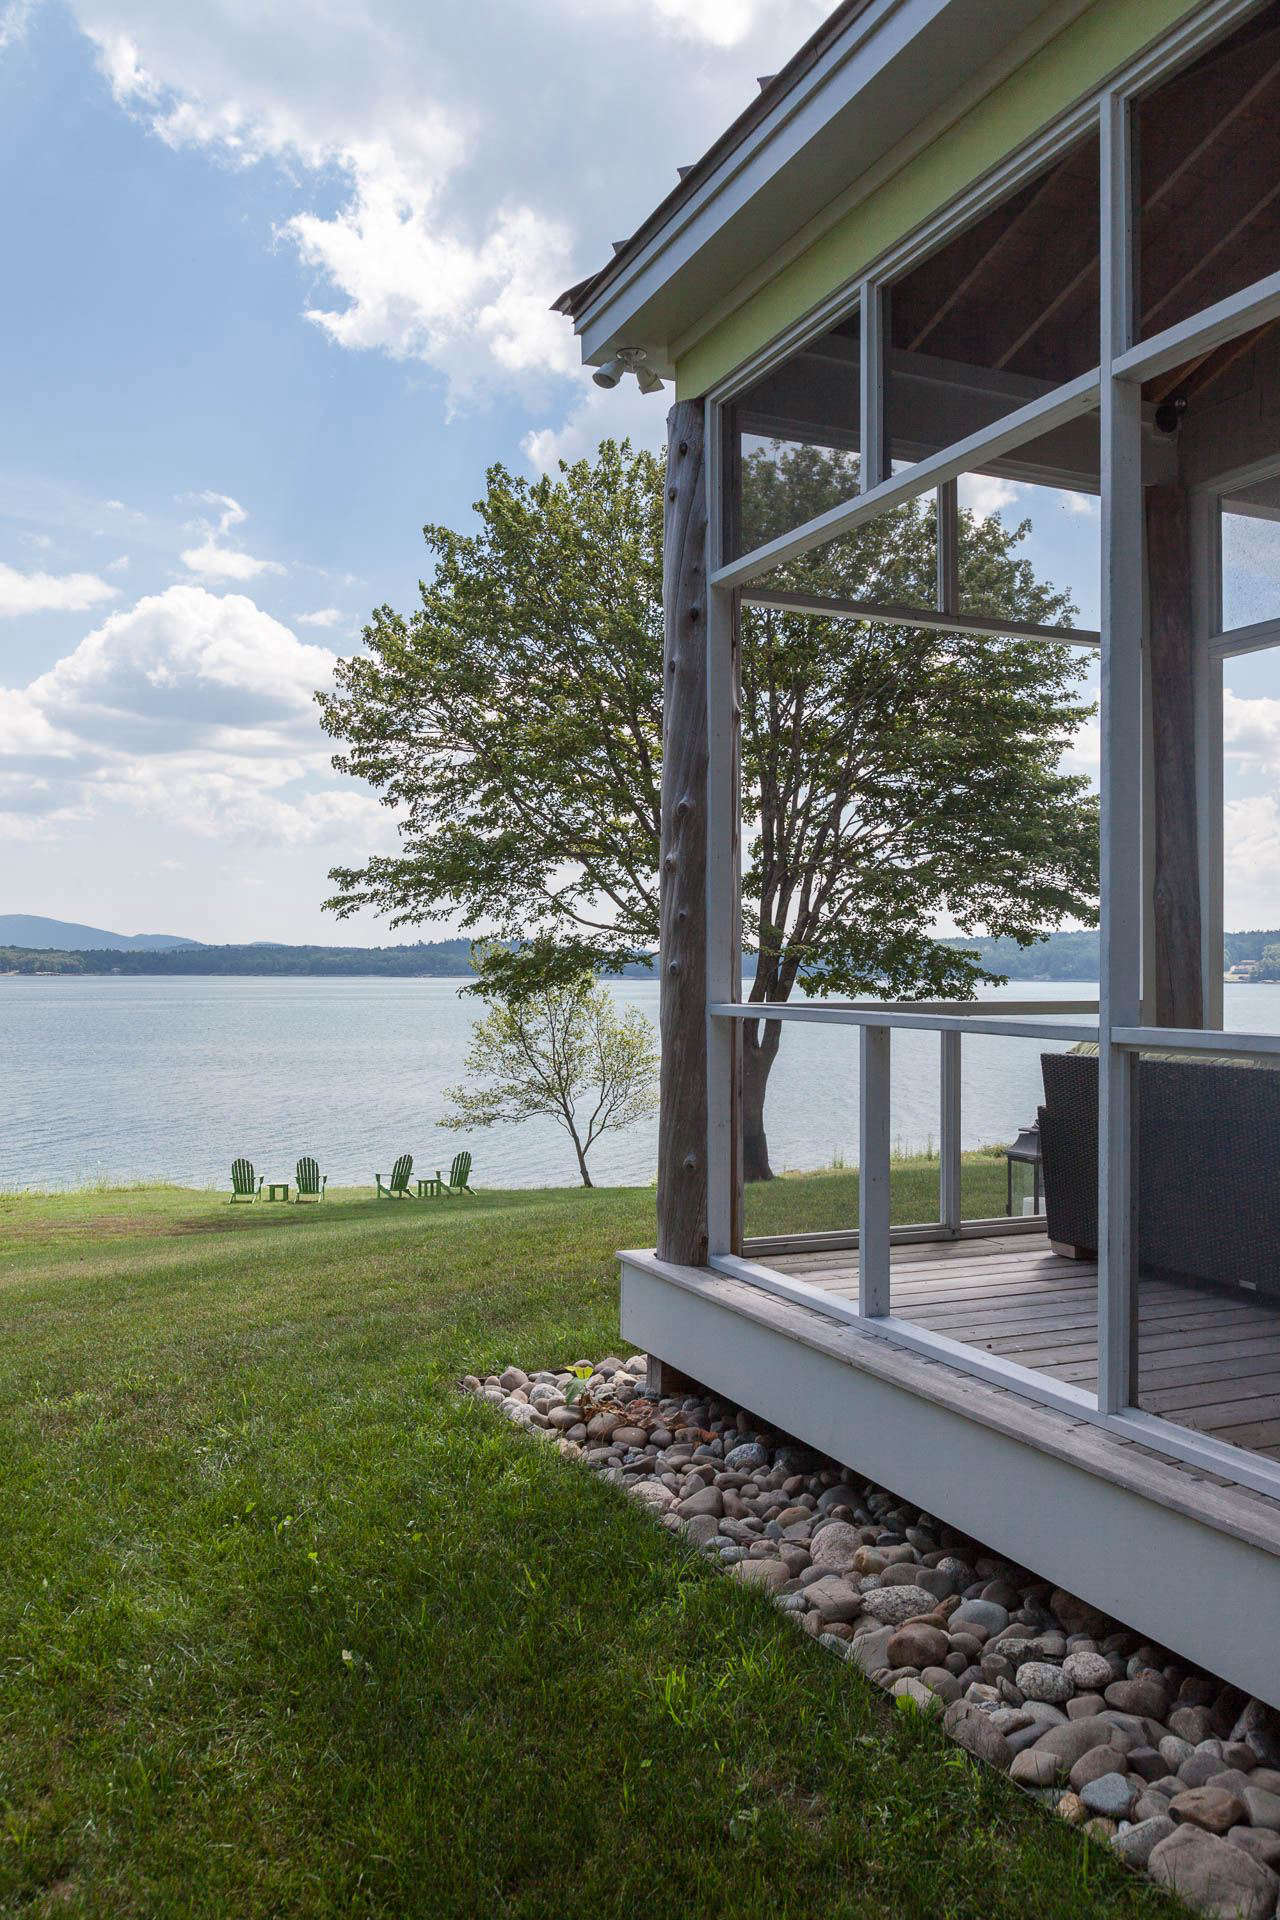 A screened porch is oriented toward the water views and has a perimeter French drain, in a garden designed by Massachusetts-based landscape architect Matthew Cunningham. Photograph by Matthew Cunningham, from Landscape Architect Visit: Clamshell Alley on the Coast of Maine.